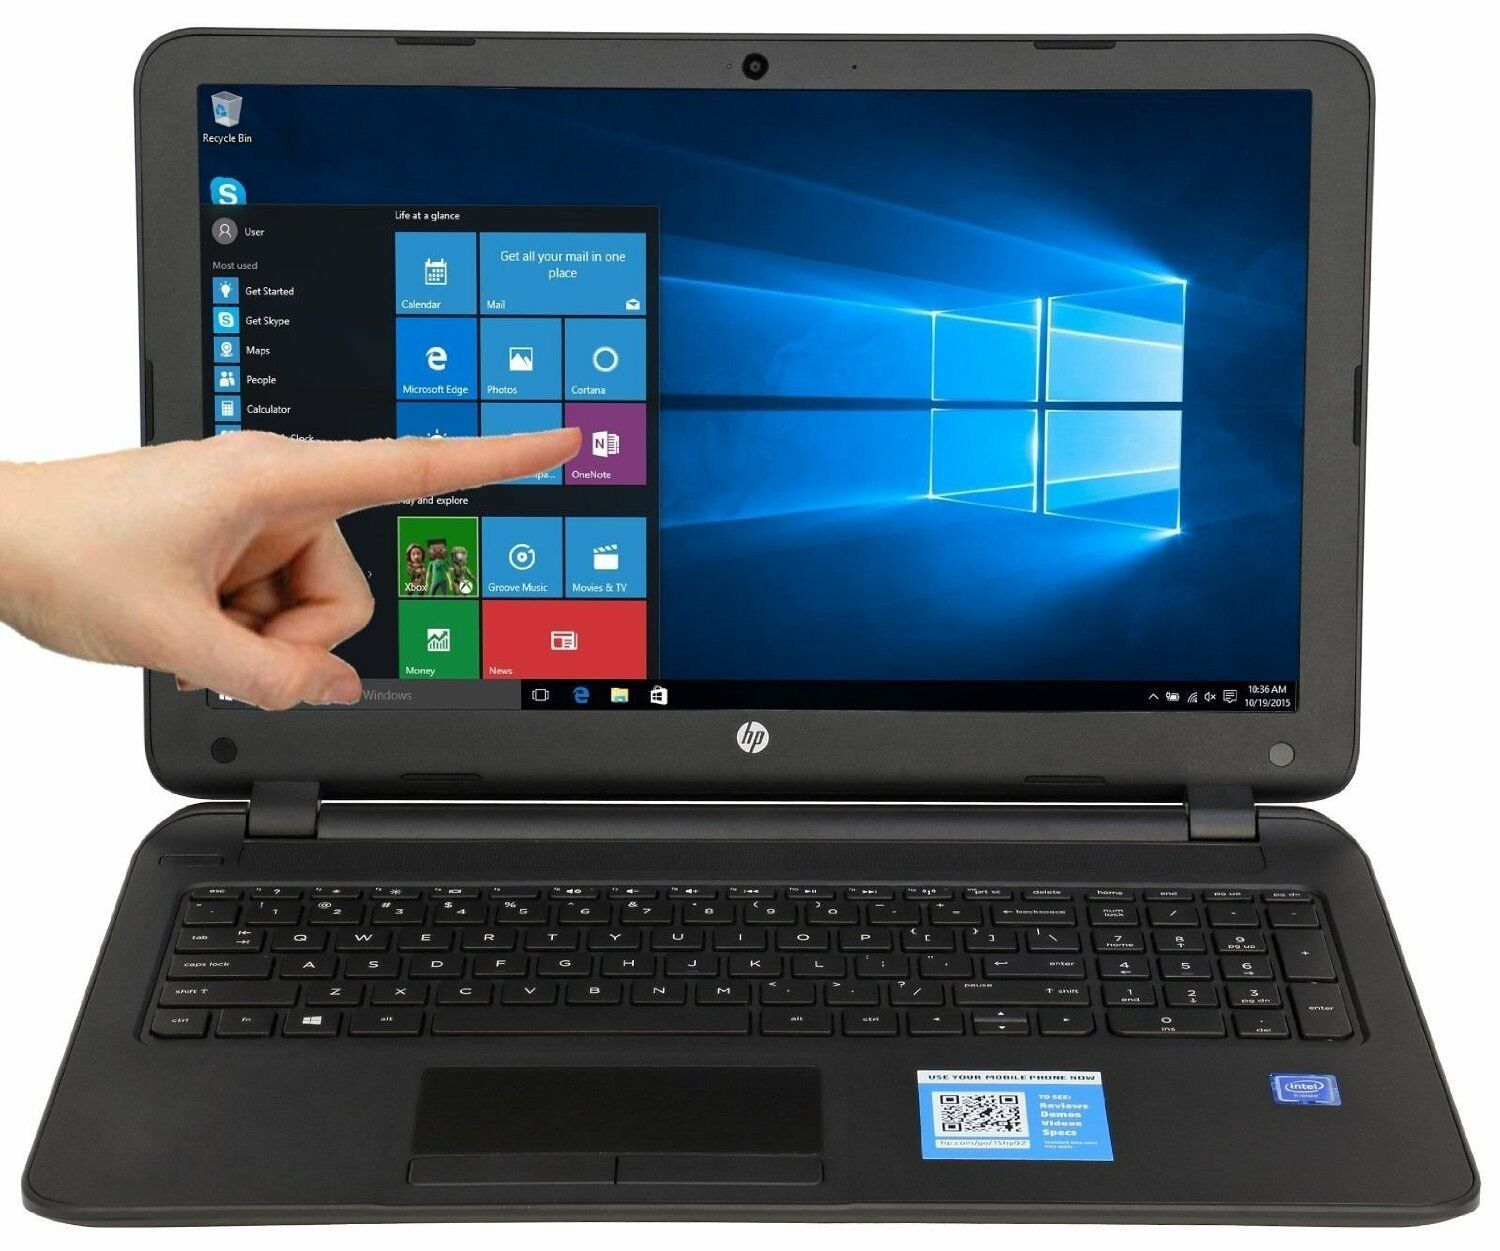 New HP 15.6 Touch screen Laptop Intel/4GB/500GB/Win 10/DVD-RW/HDMI/WiFi/Webcam